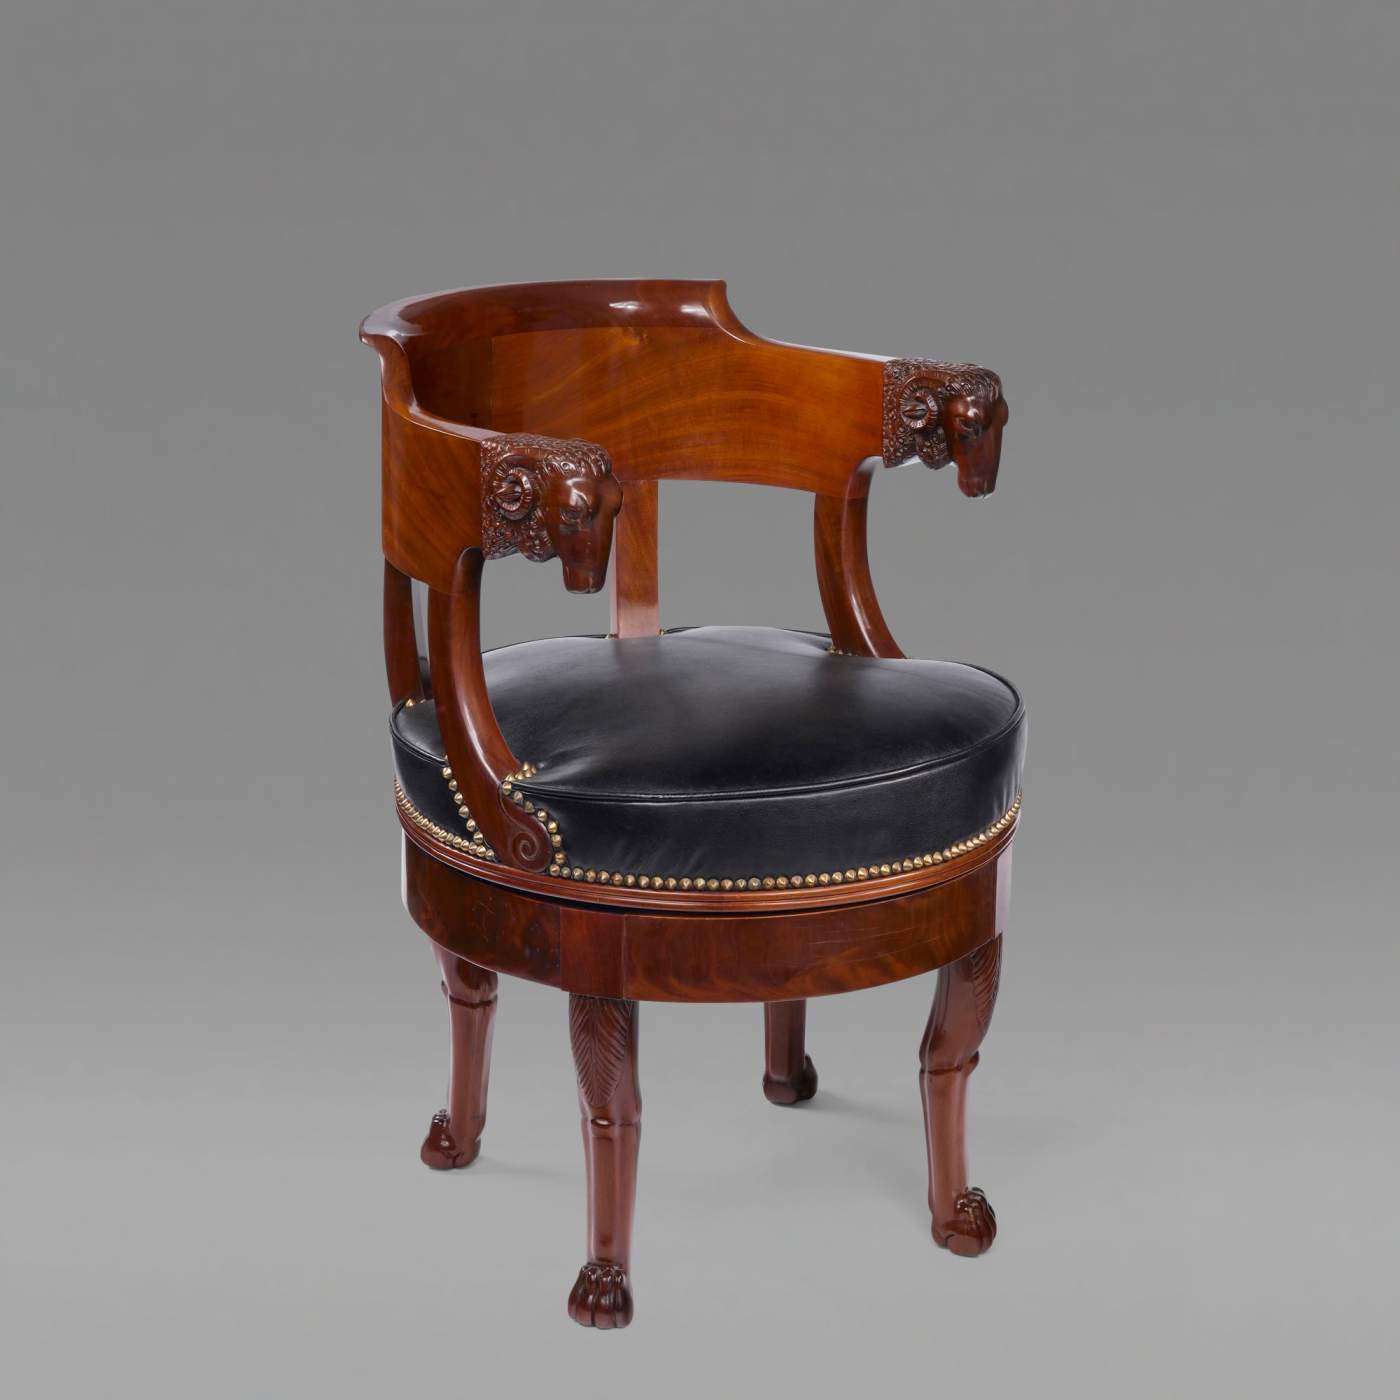 fran ois honor georges jacob desmalter french empire fauteuil attributed to francois honore. Black Bedroom Furniture Sets. Home Design Ideas